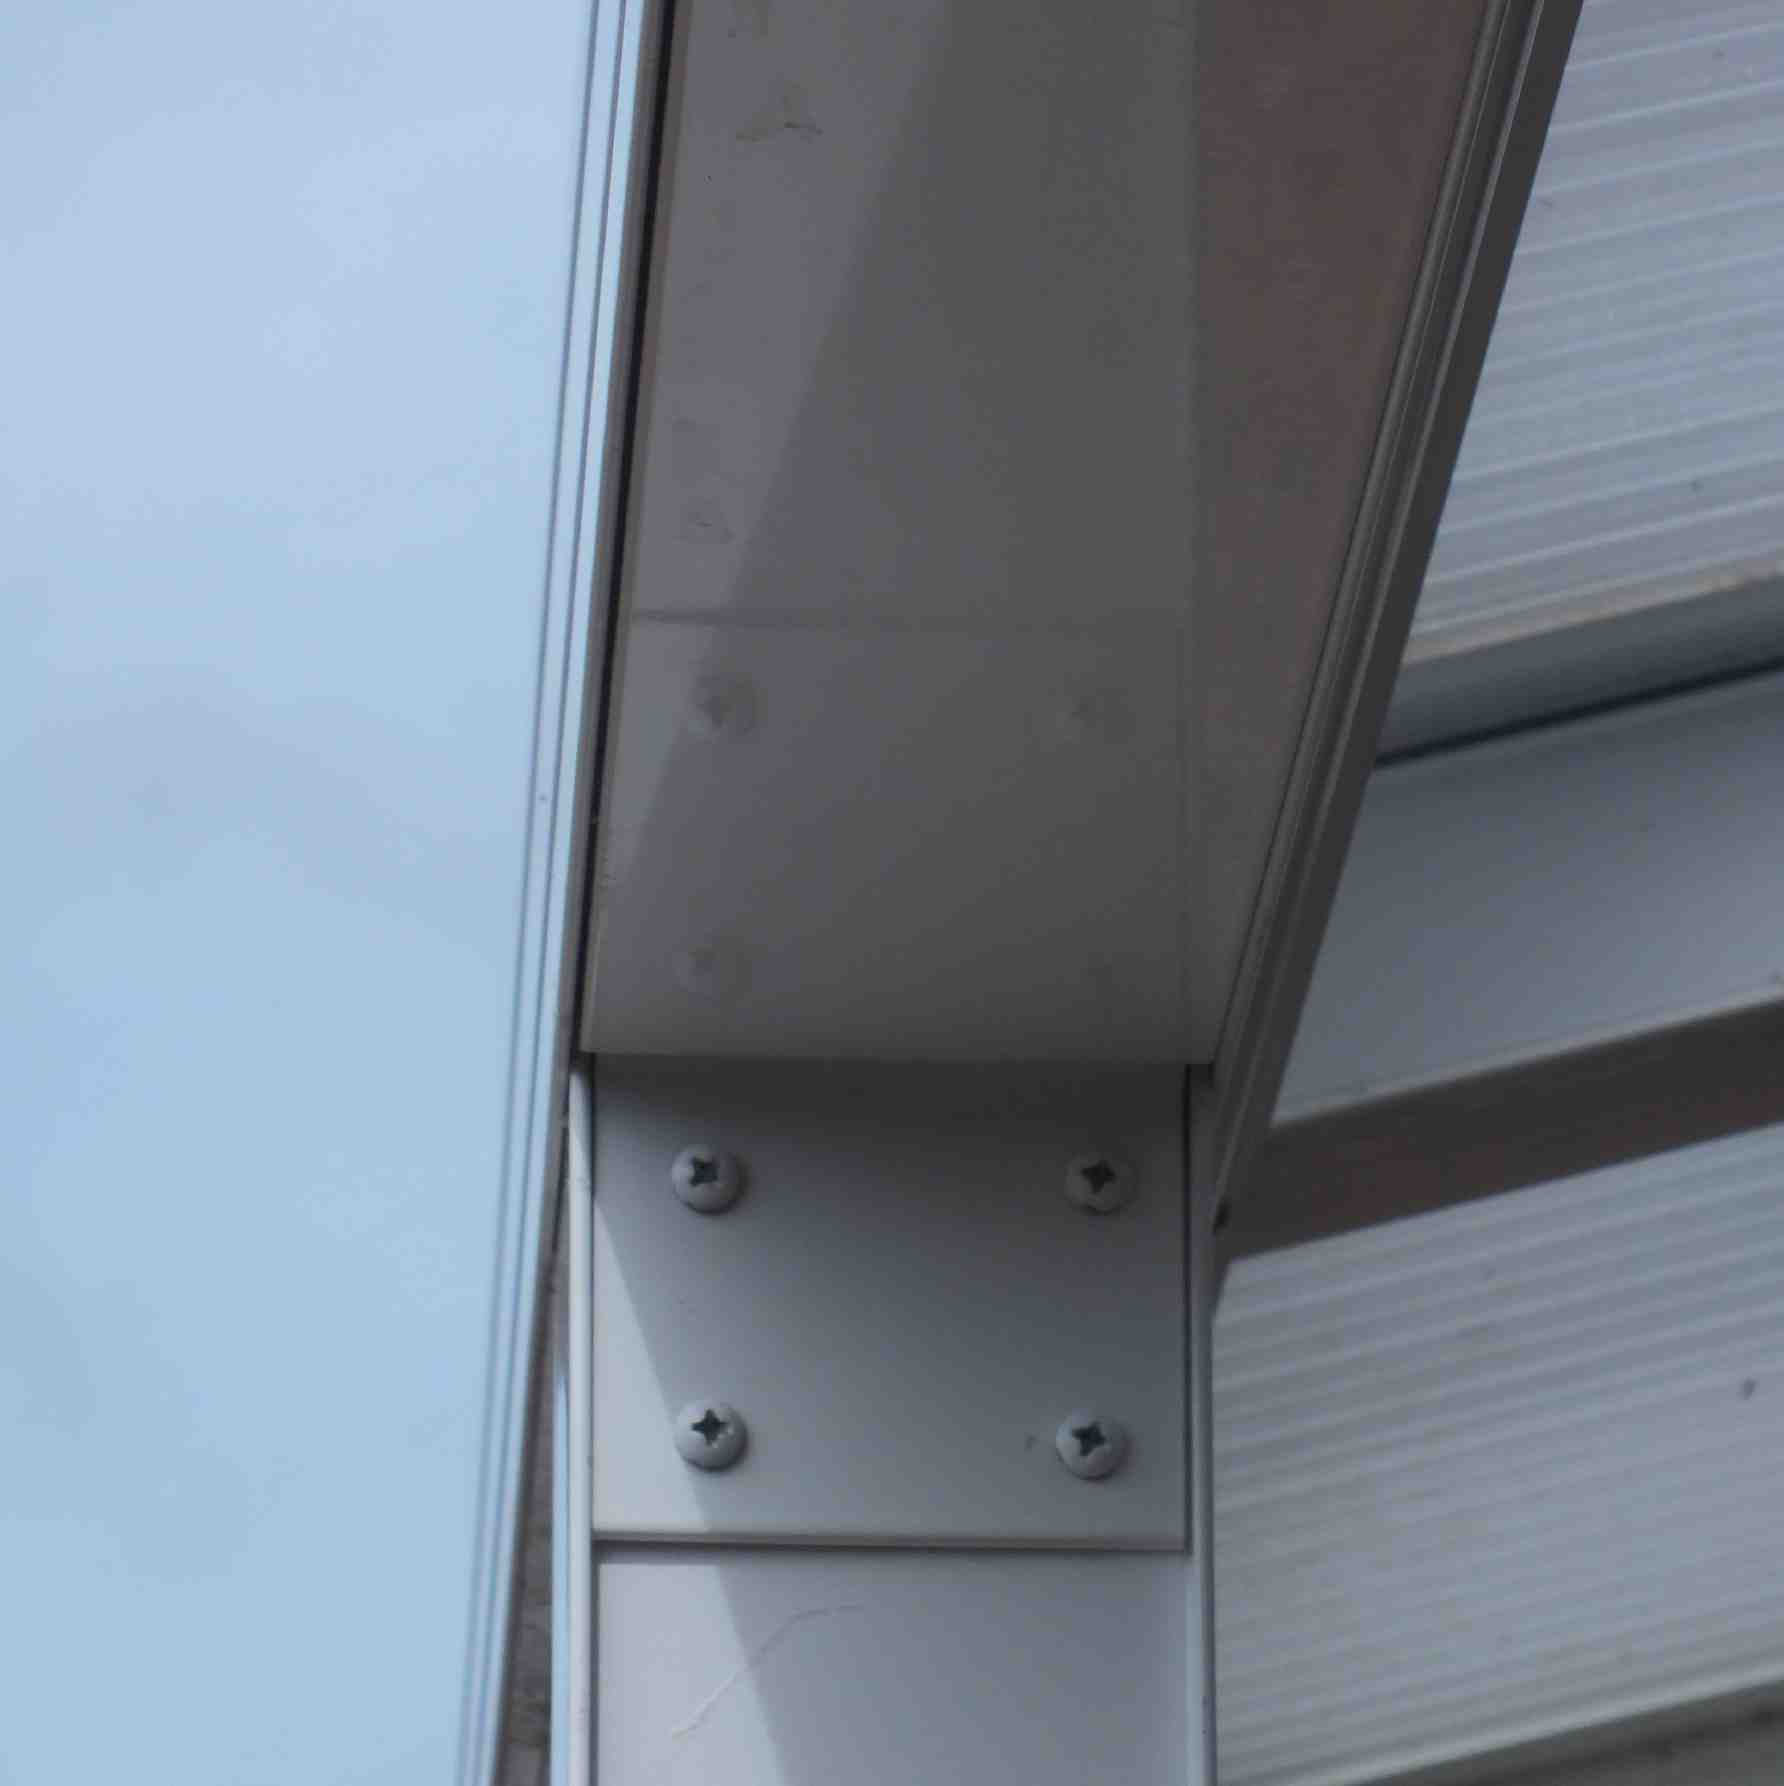 Affordable Omega Verandah with 6mm Glass Clear Plate Polycarbonate Glazing - 2.8m (W) x 1.5m (P), (2) Supporting Posts